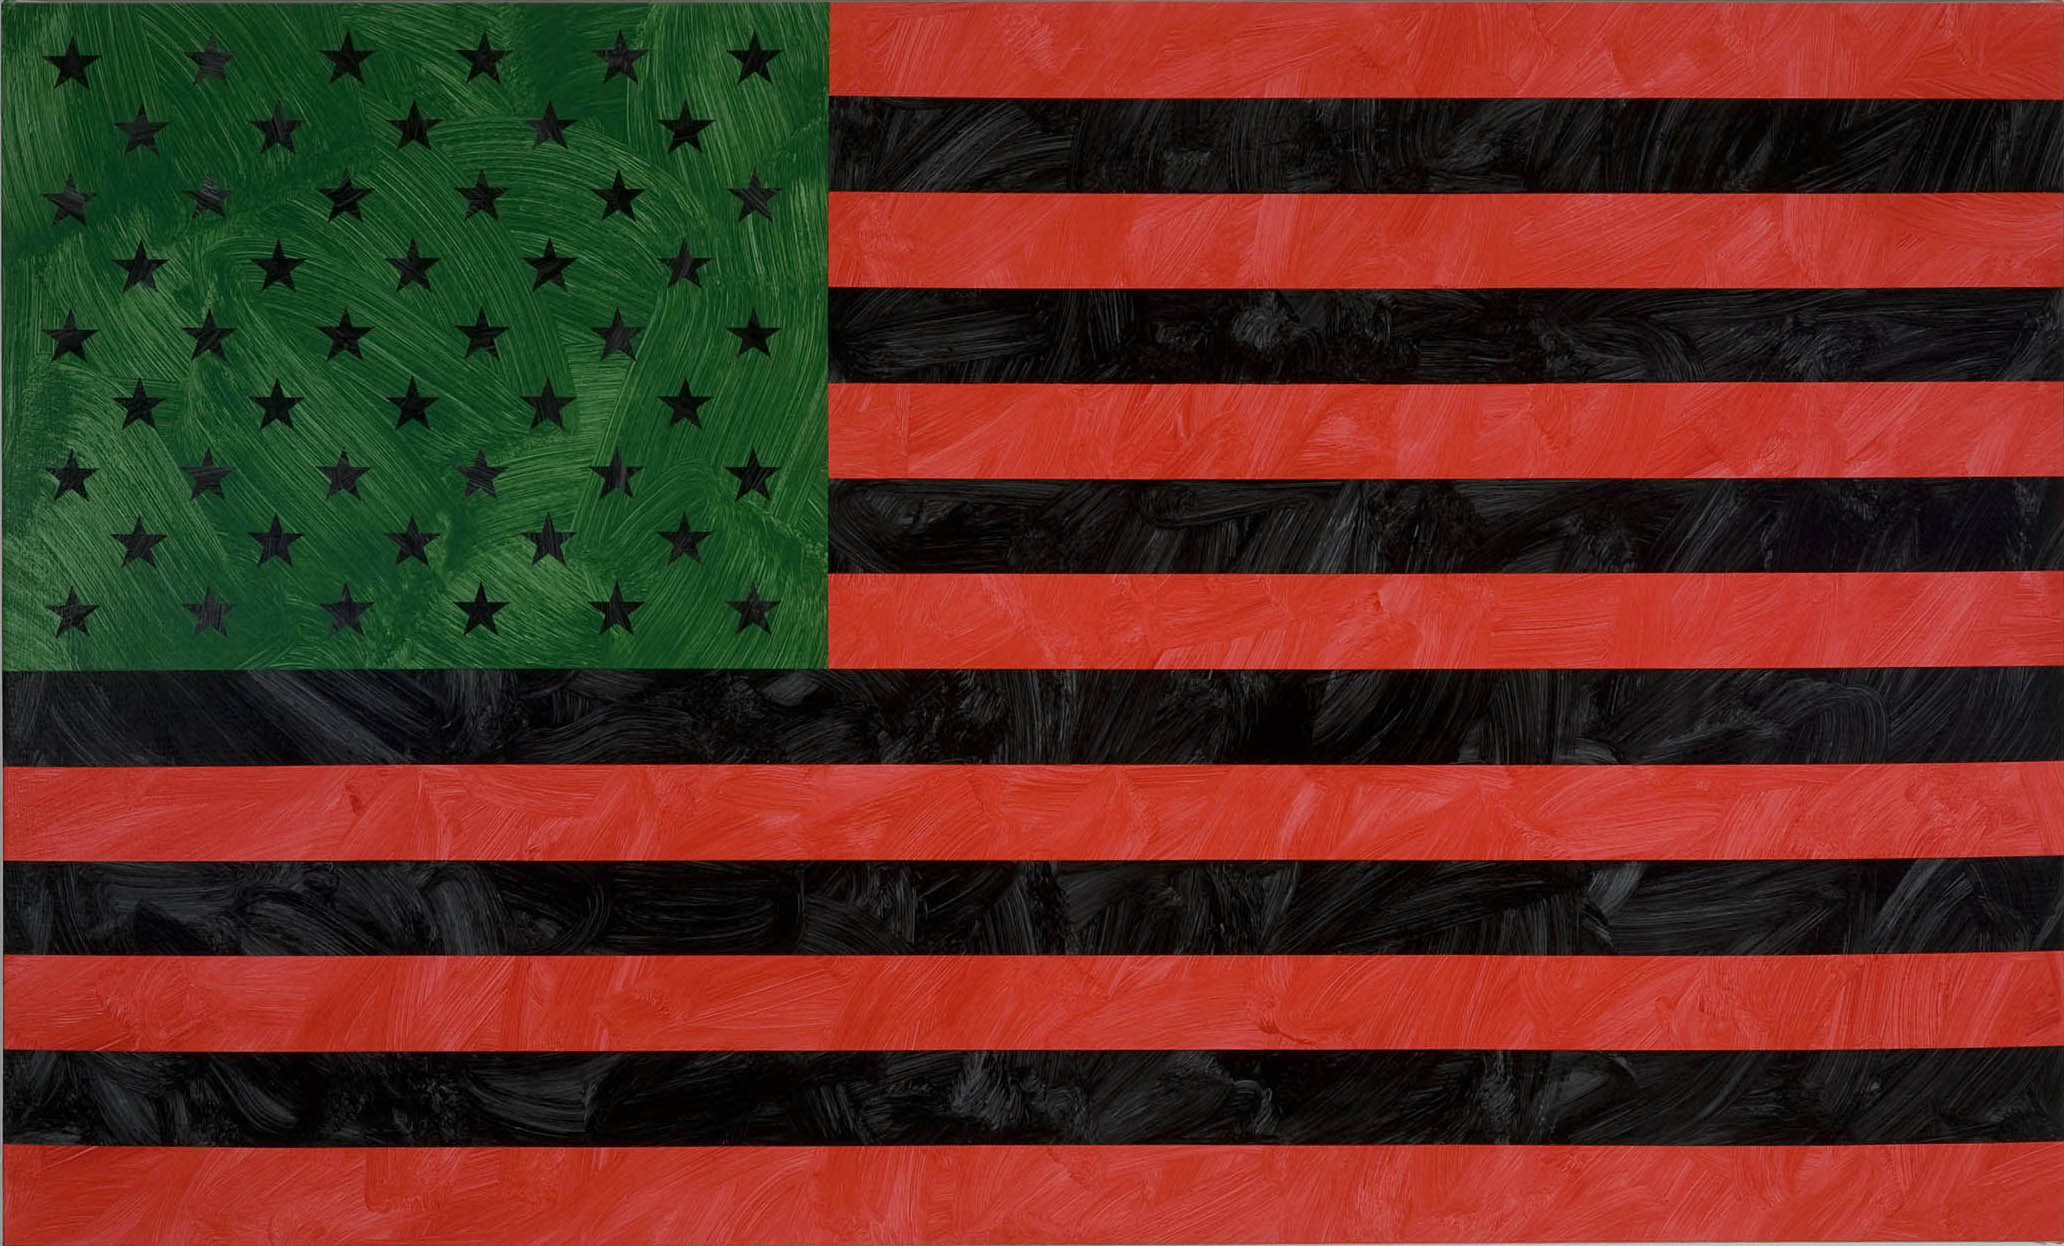 Louis Cameron | African-American Flag (after David Hammons), 2009 |